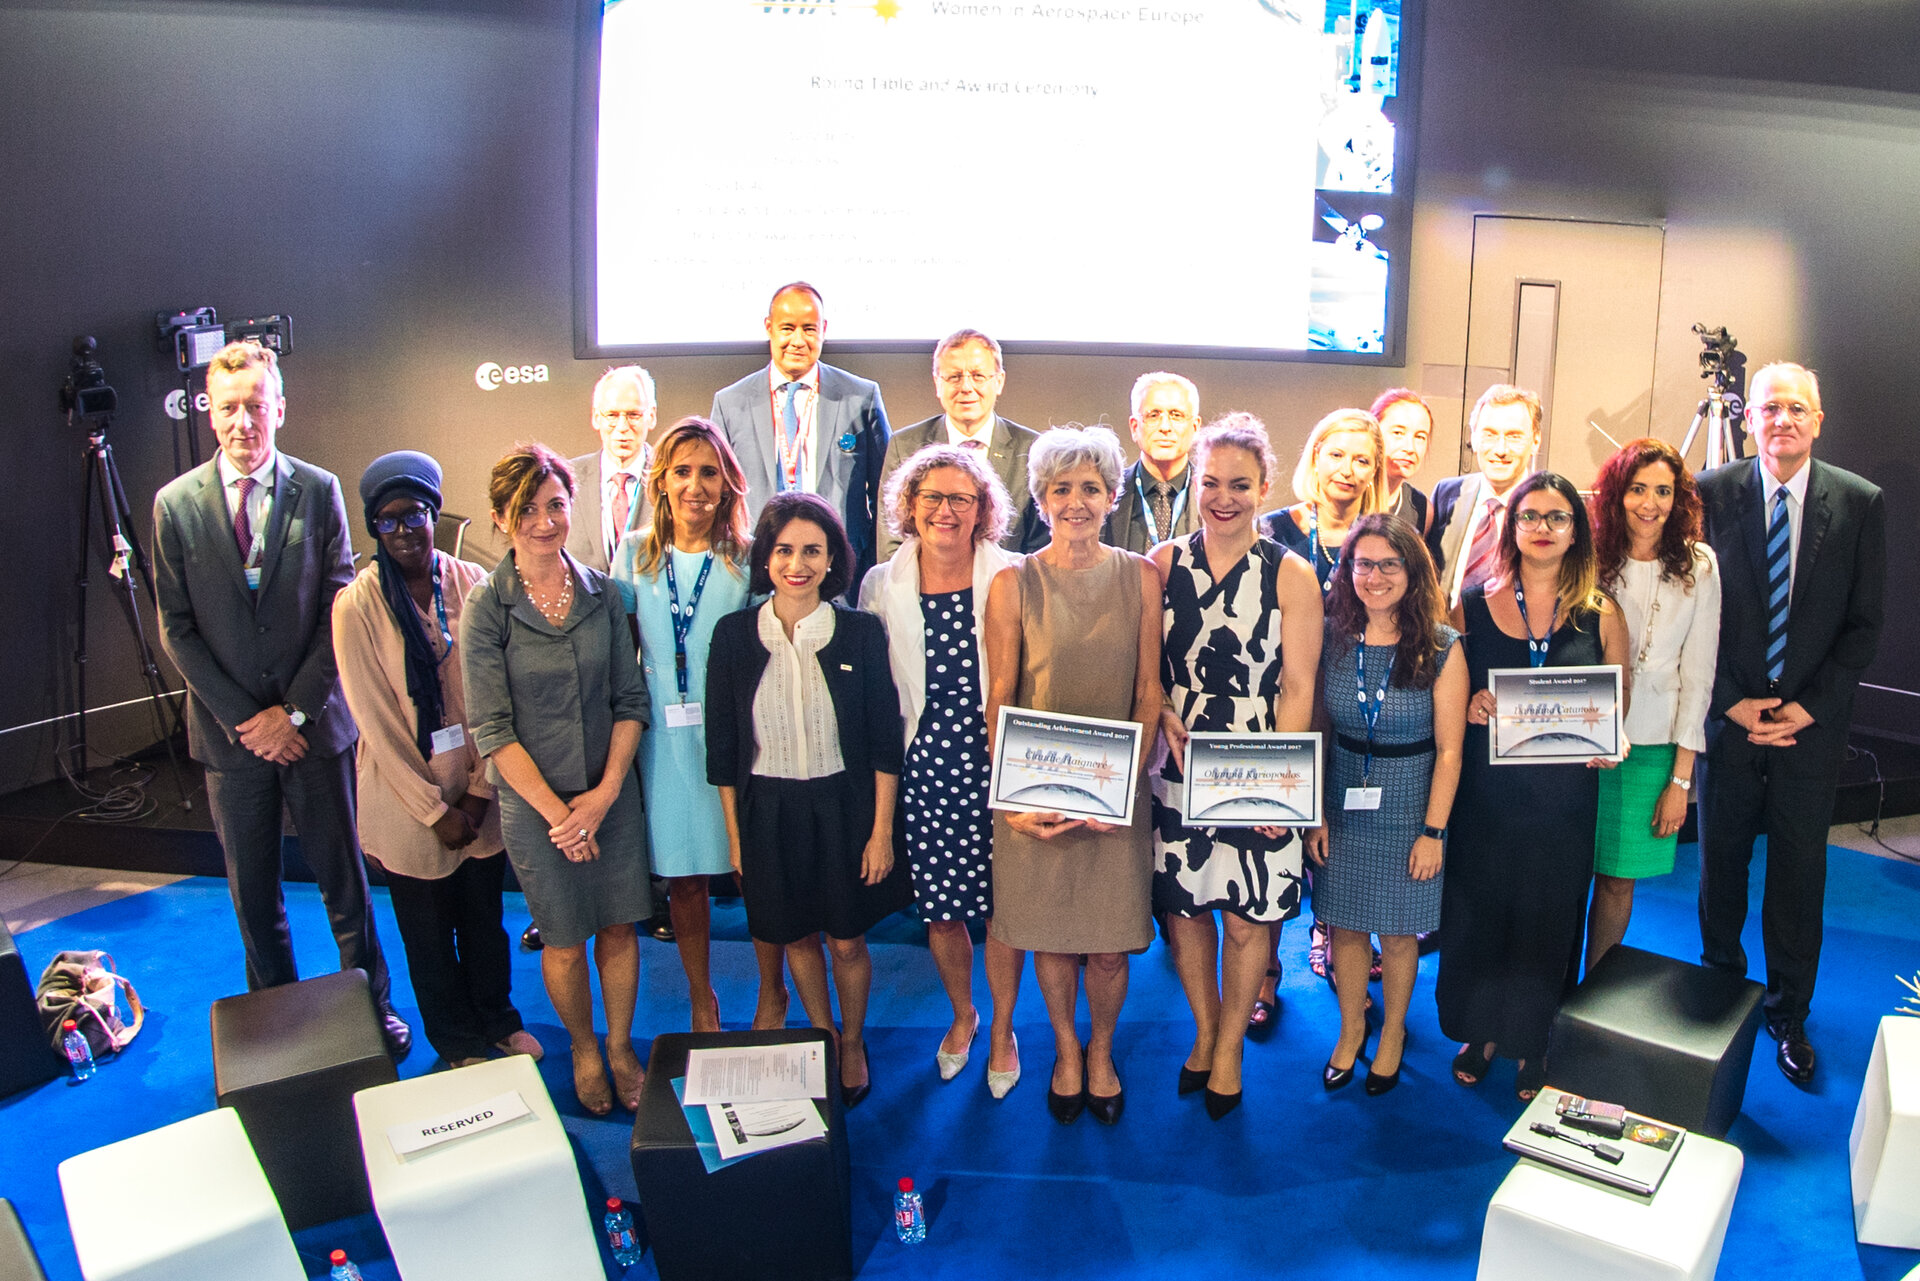 Group photo after the WIA-E Awards Ceremony at ESA Pavilion